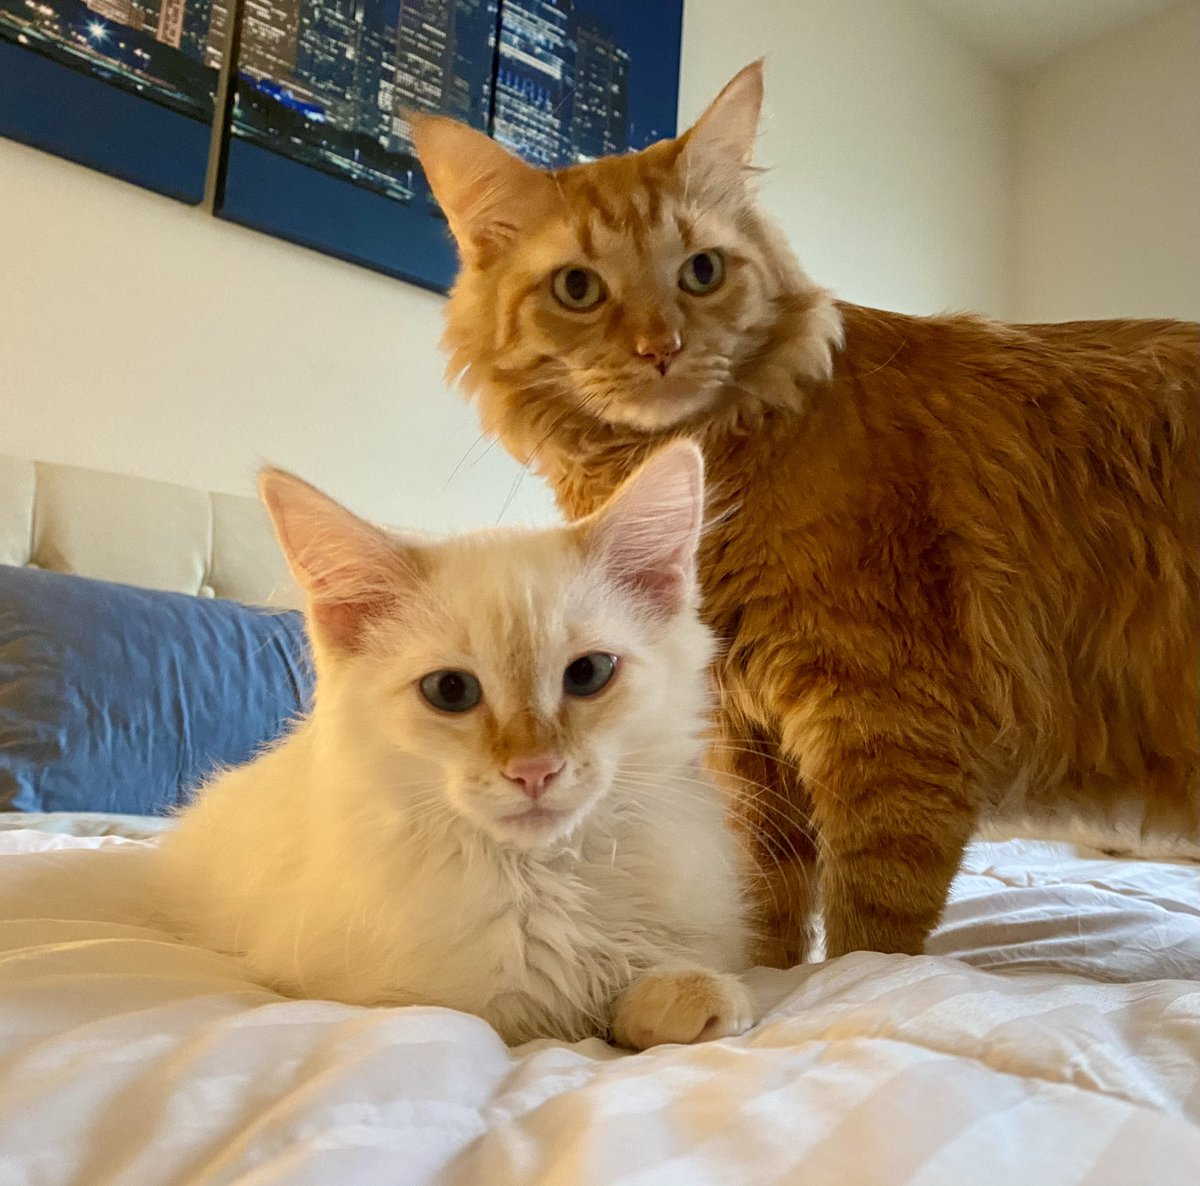 Oh hey, it's #Caturday so here's a picture of my cats!   Also, if @tedcruz had any morals left, he'd resign from the senate for betraying his oath to the U.S. Constitution! #TedCruzIsATraitor